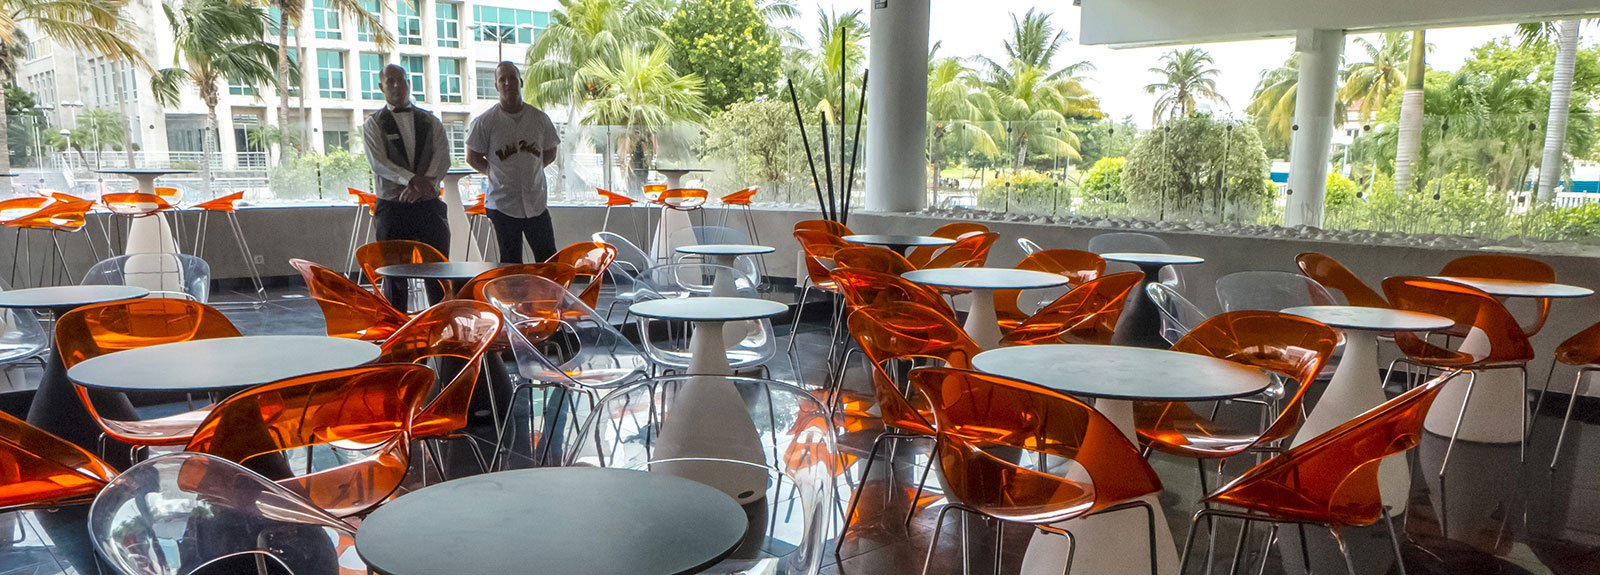 Melia Habana sport bar red chairs